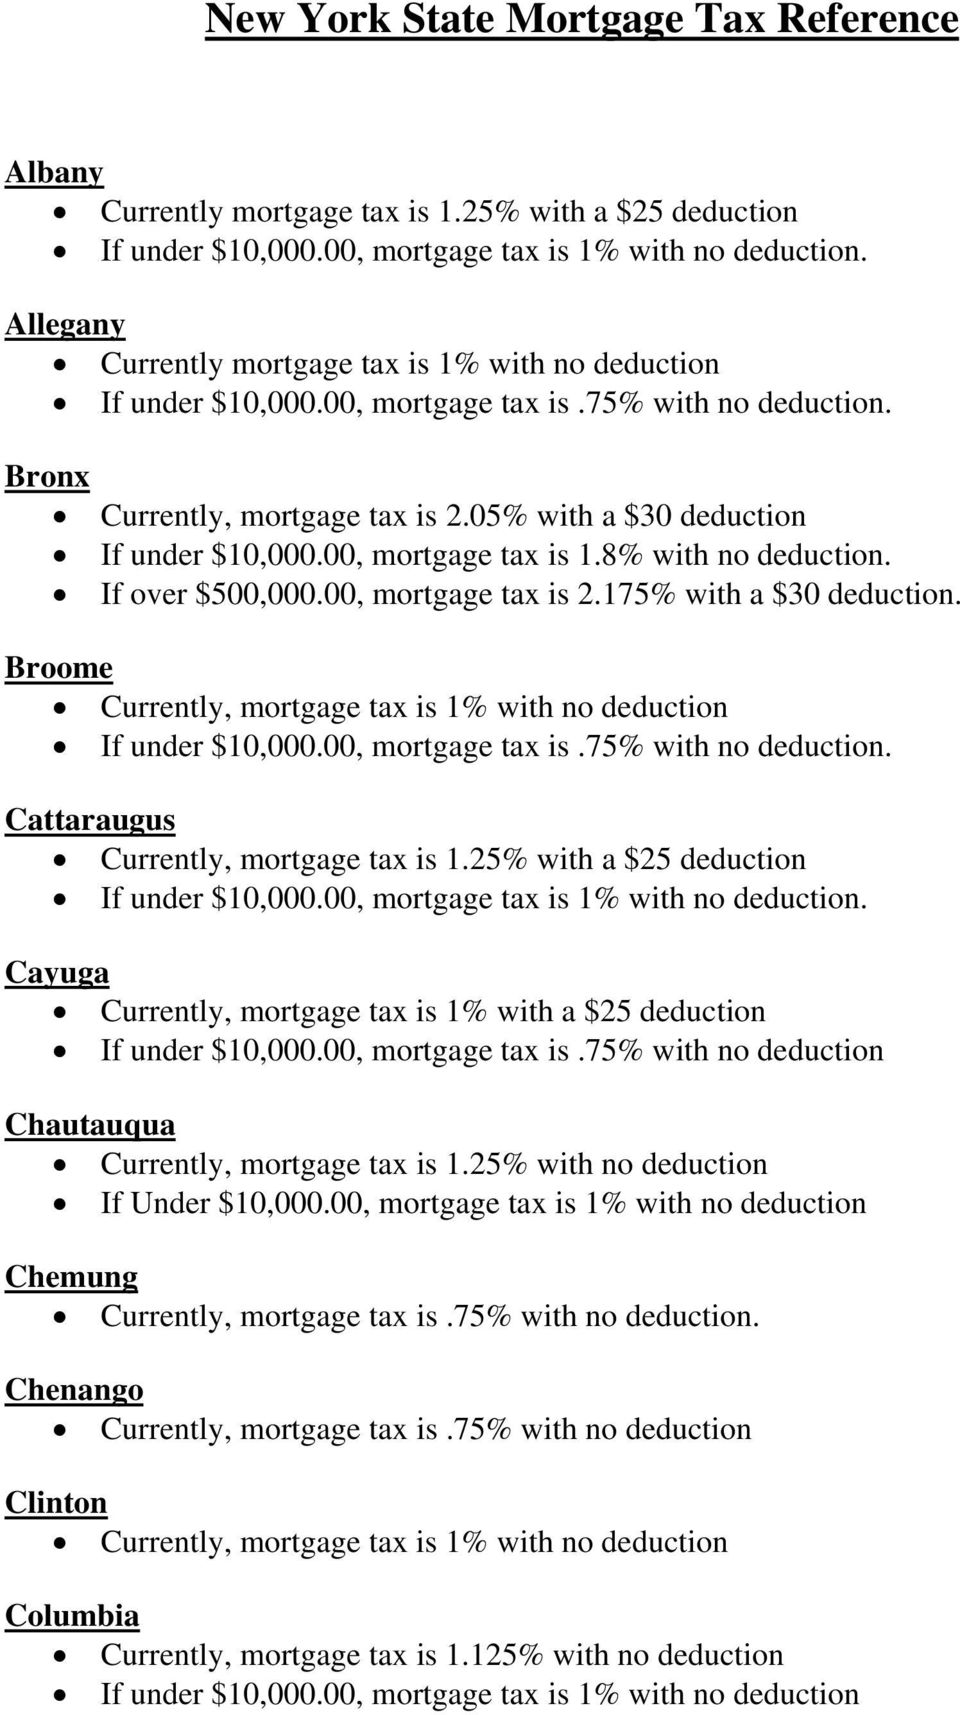 00, mortgage tax is 2.175% with a $30 deduction. Broome. Cattaraugus Currently, mortgage tax is 1.25% with a $25 deduction If under $10,000.00, mortgage tax is 1% with no deduction.